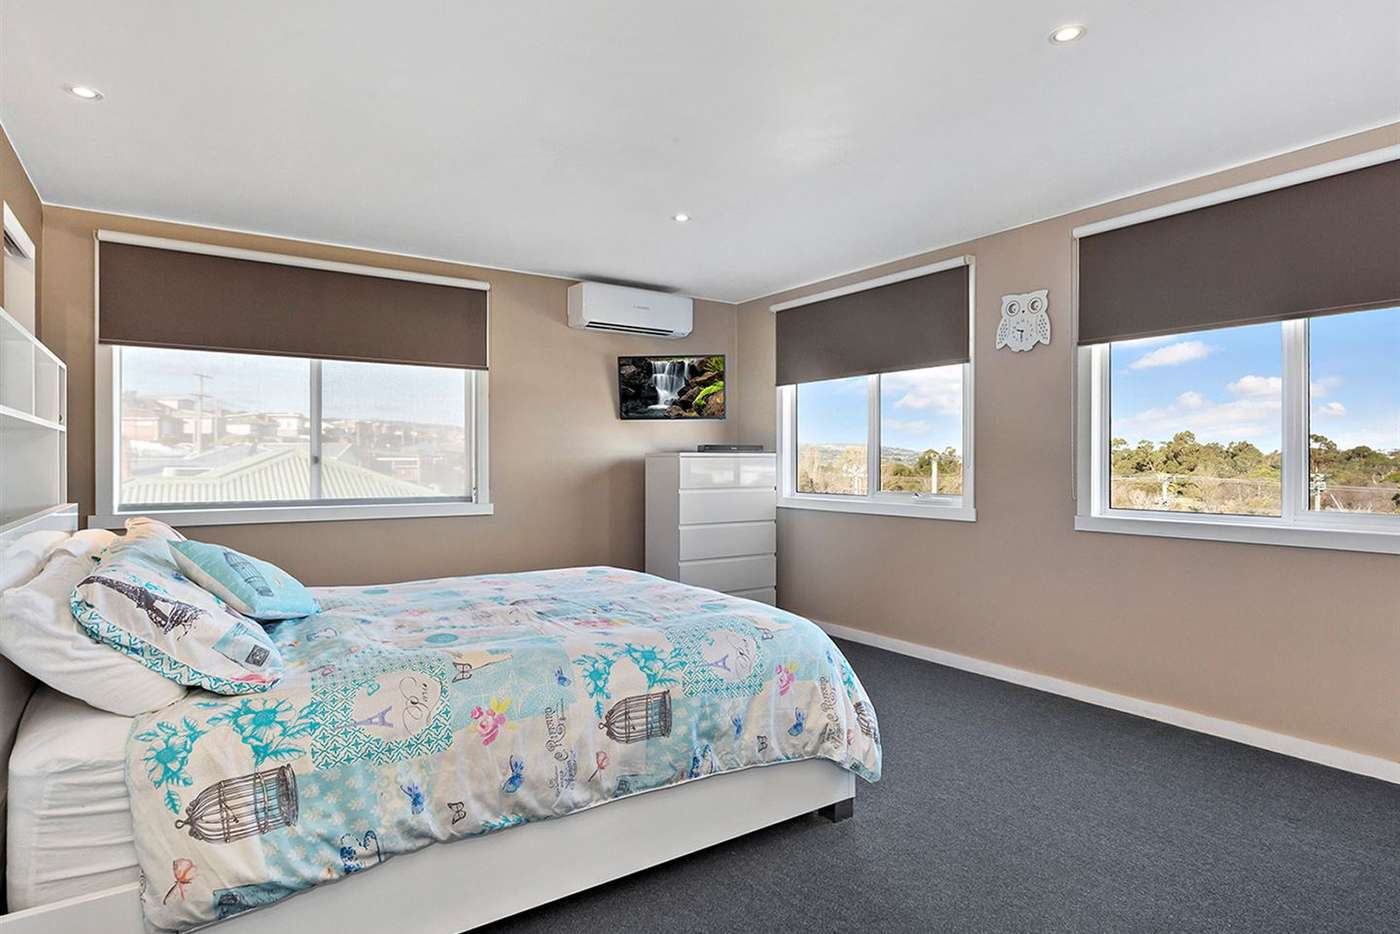 Sixth view of Homely house listing, 12 Crawford St, Mowbray TAS 7248